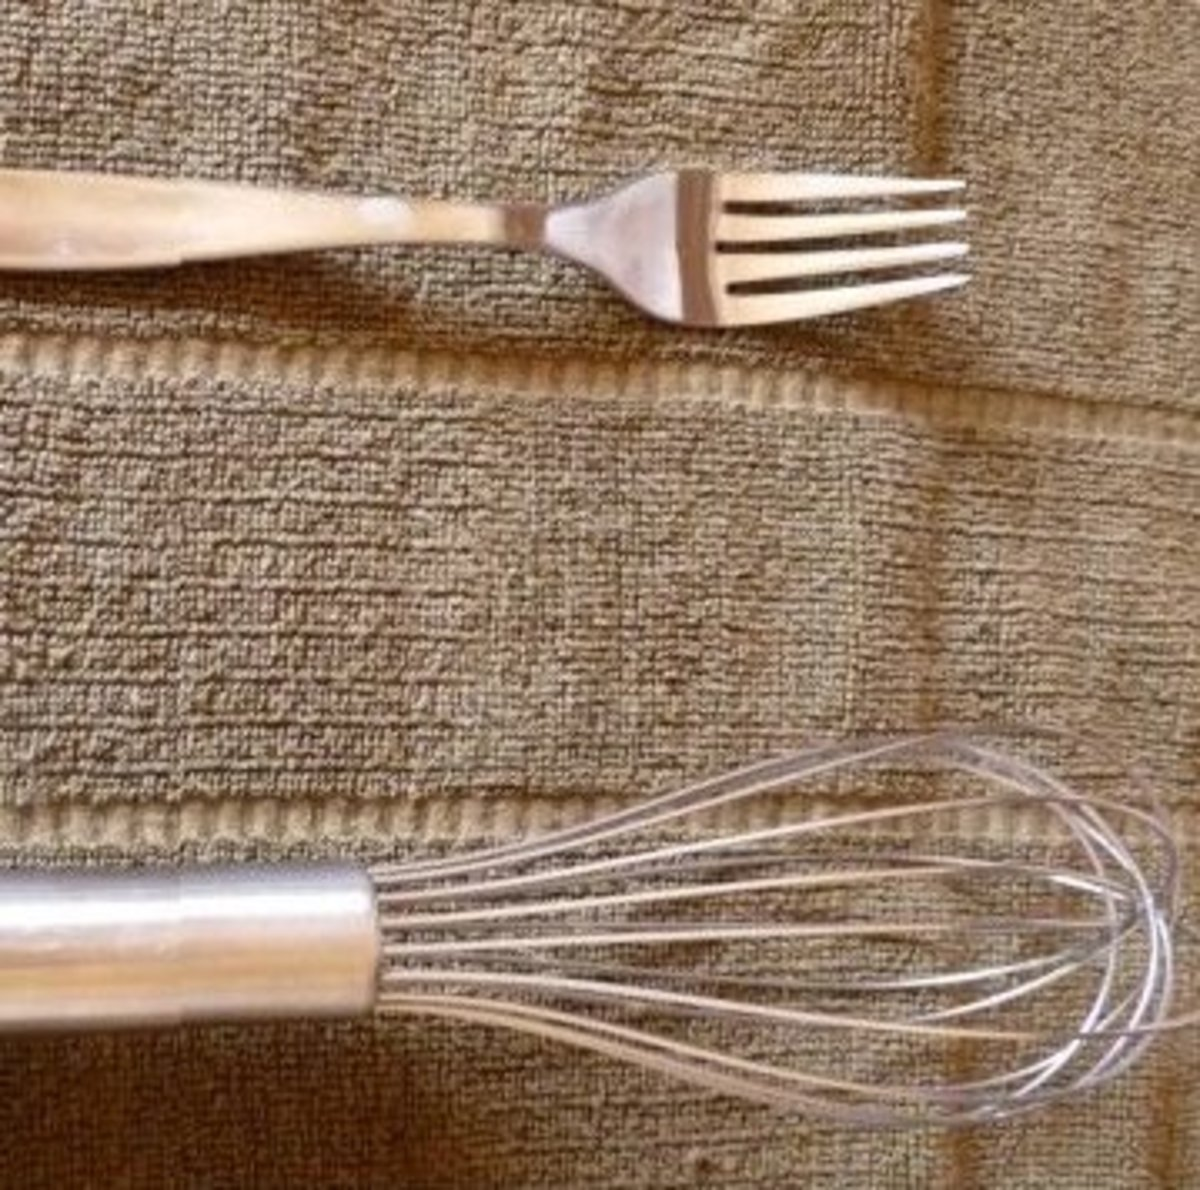 Whisk vs Fork.